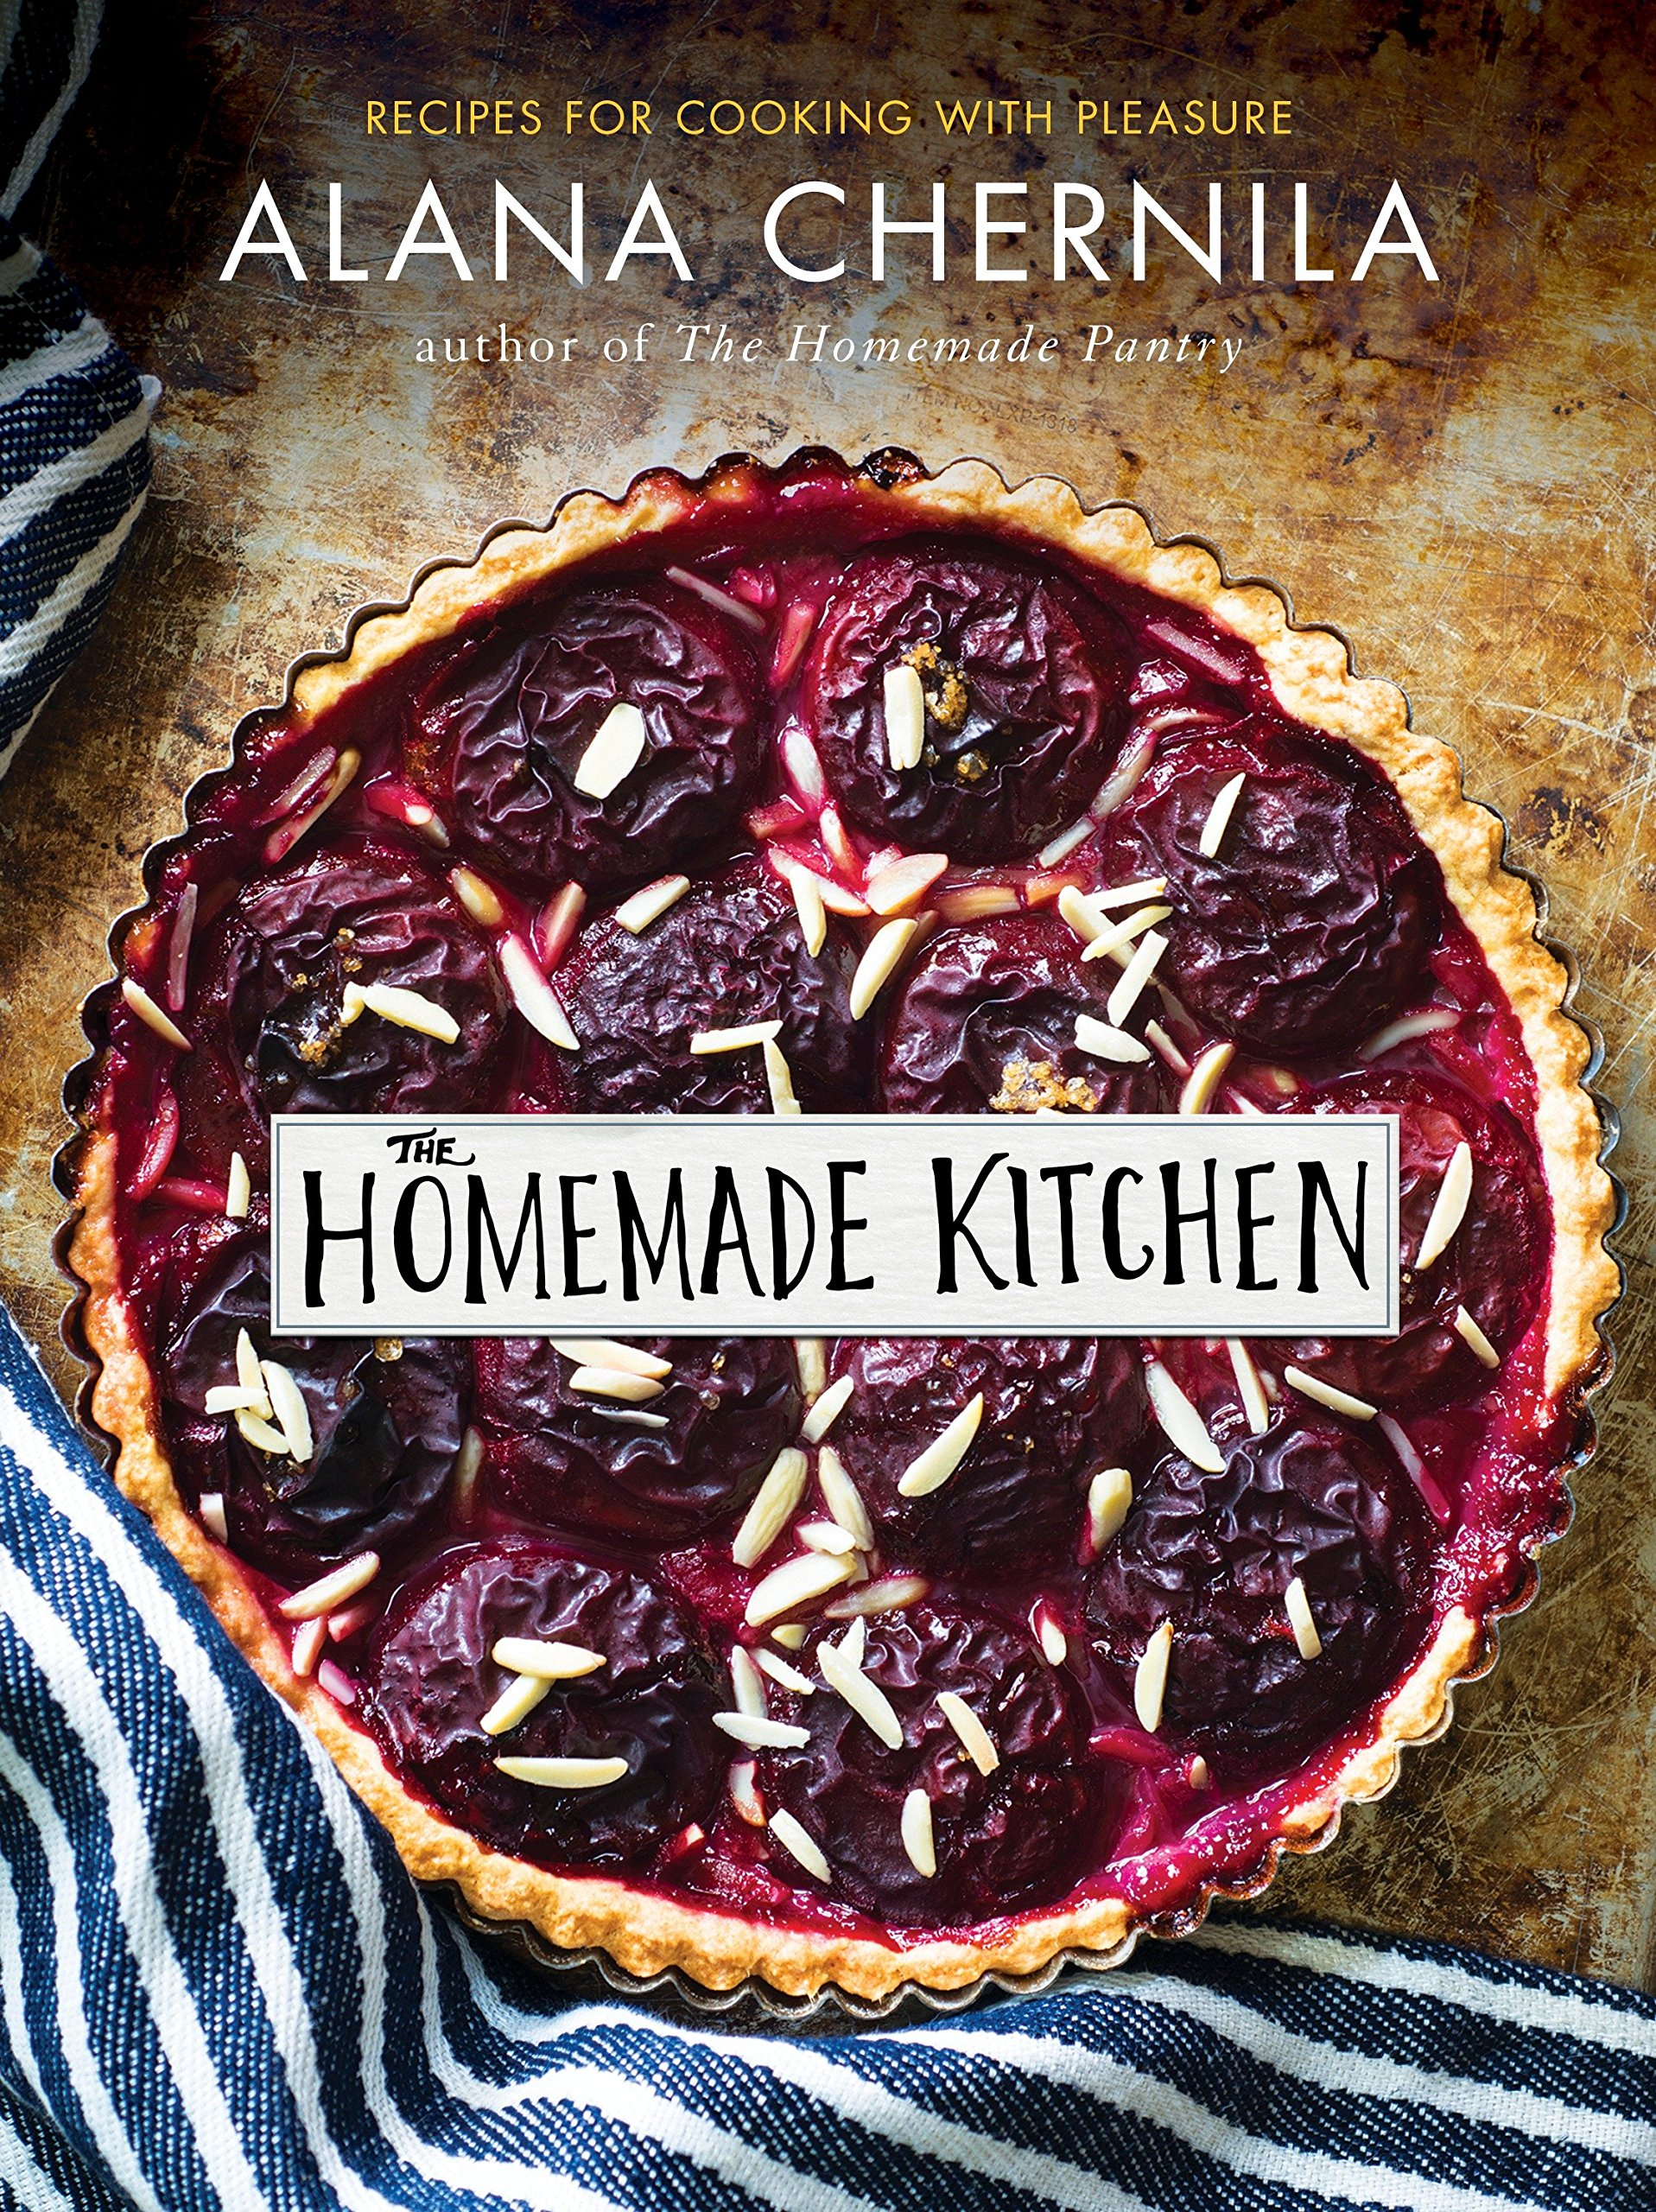 The Homemade Kitchen: Recipes for Cooking with Pleasure: A Cookbook by Clarkson Potter Publishers